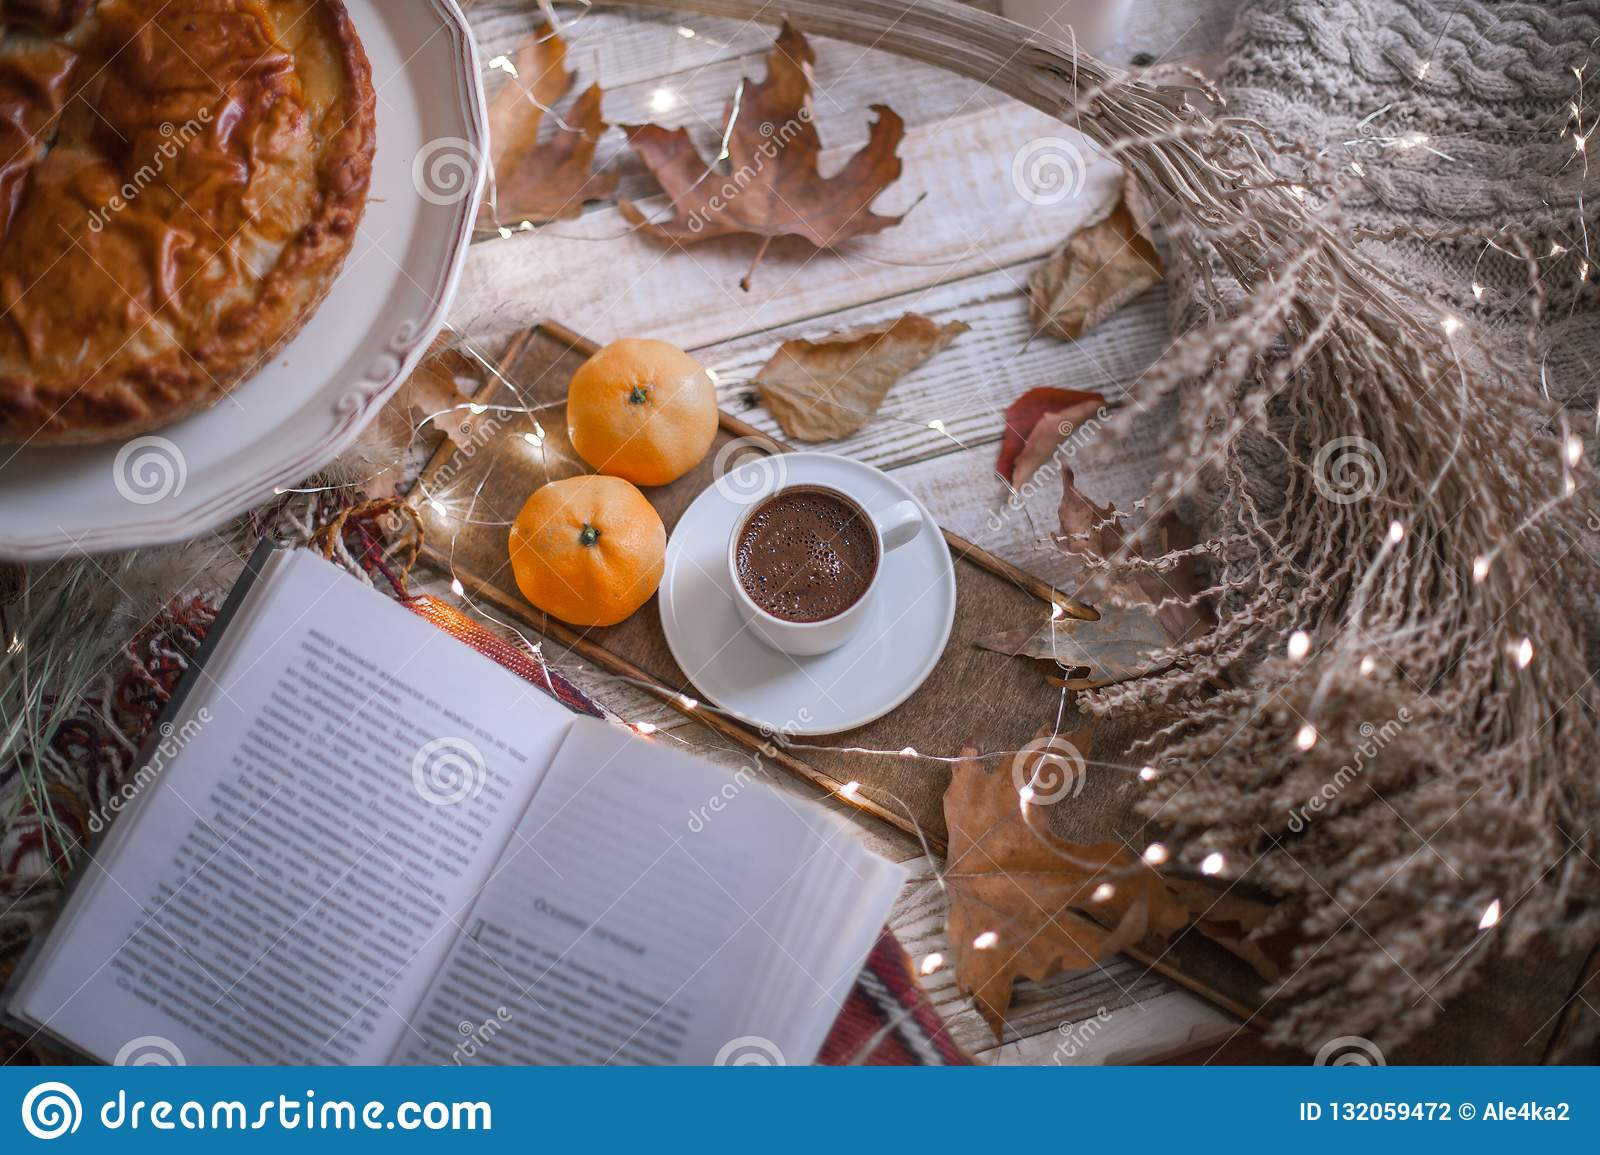 Fall cozy day with book and coffee